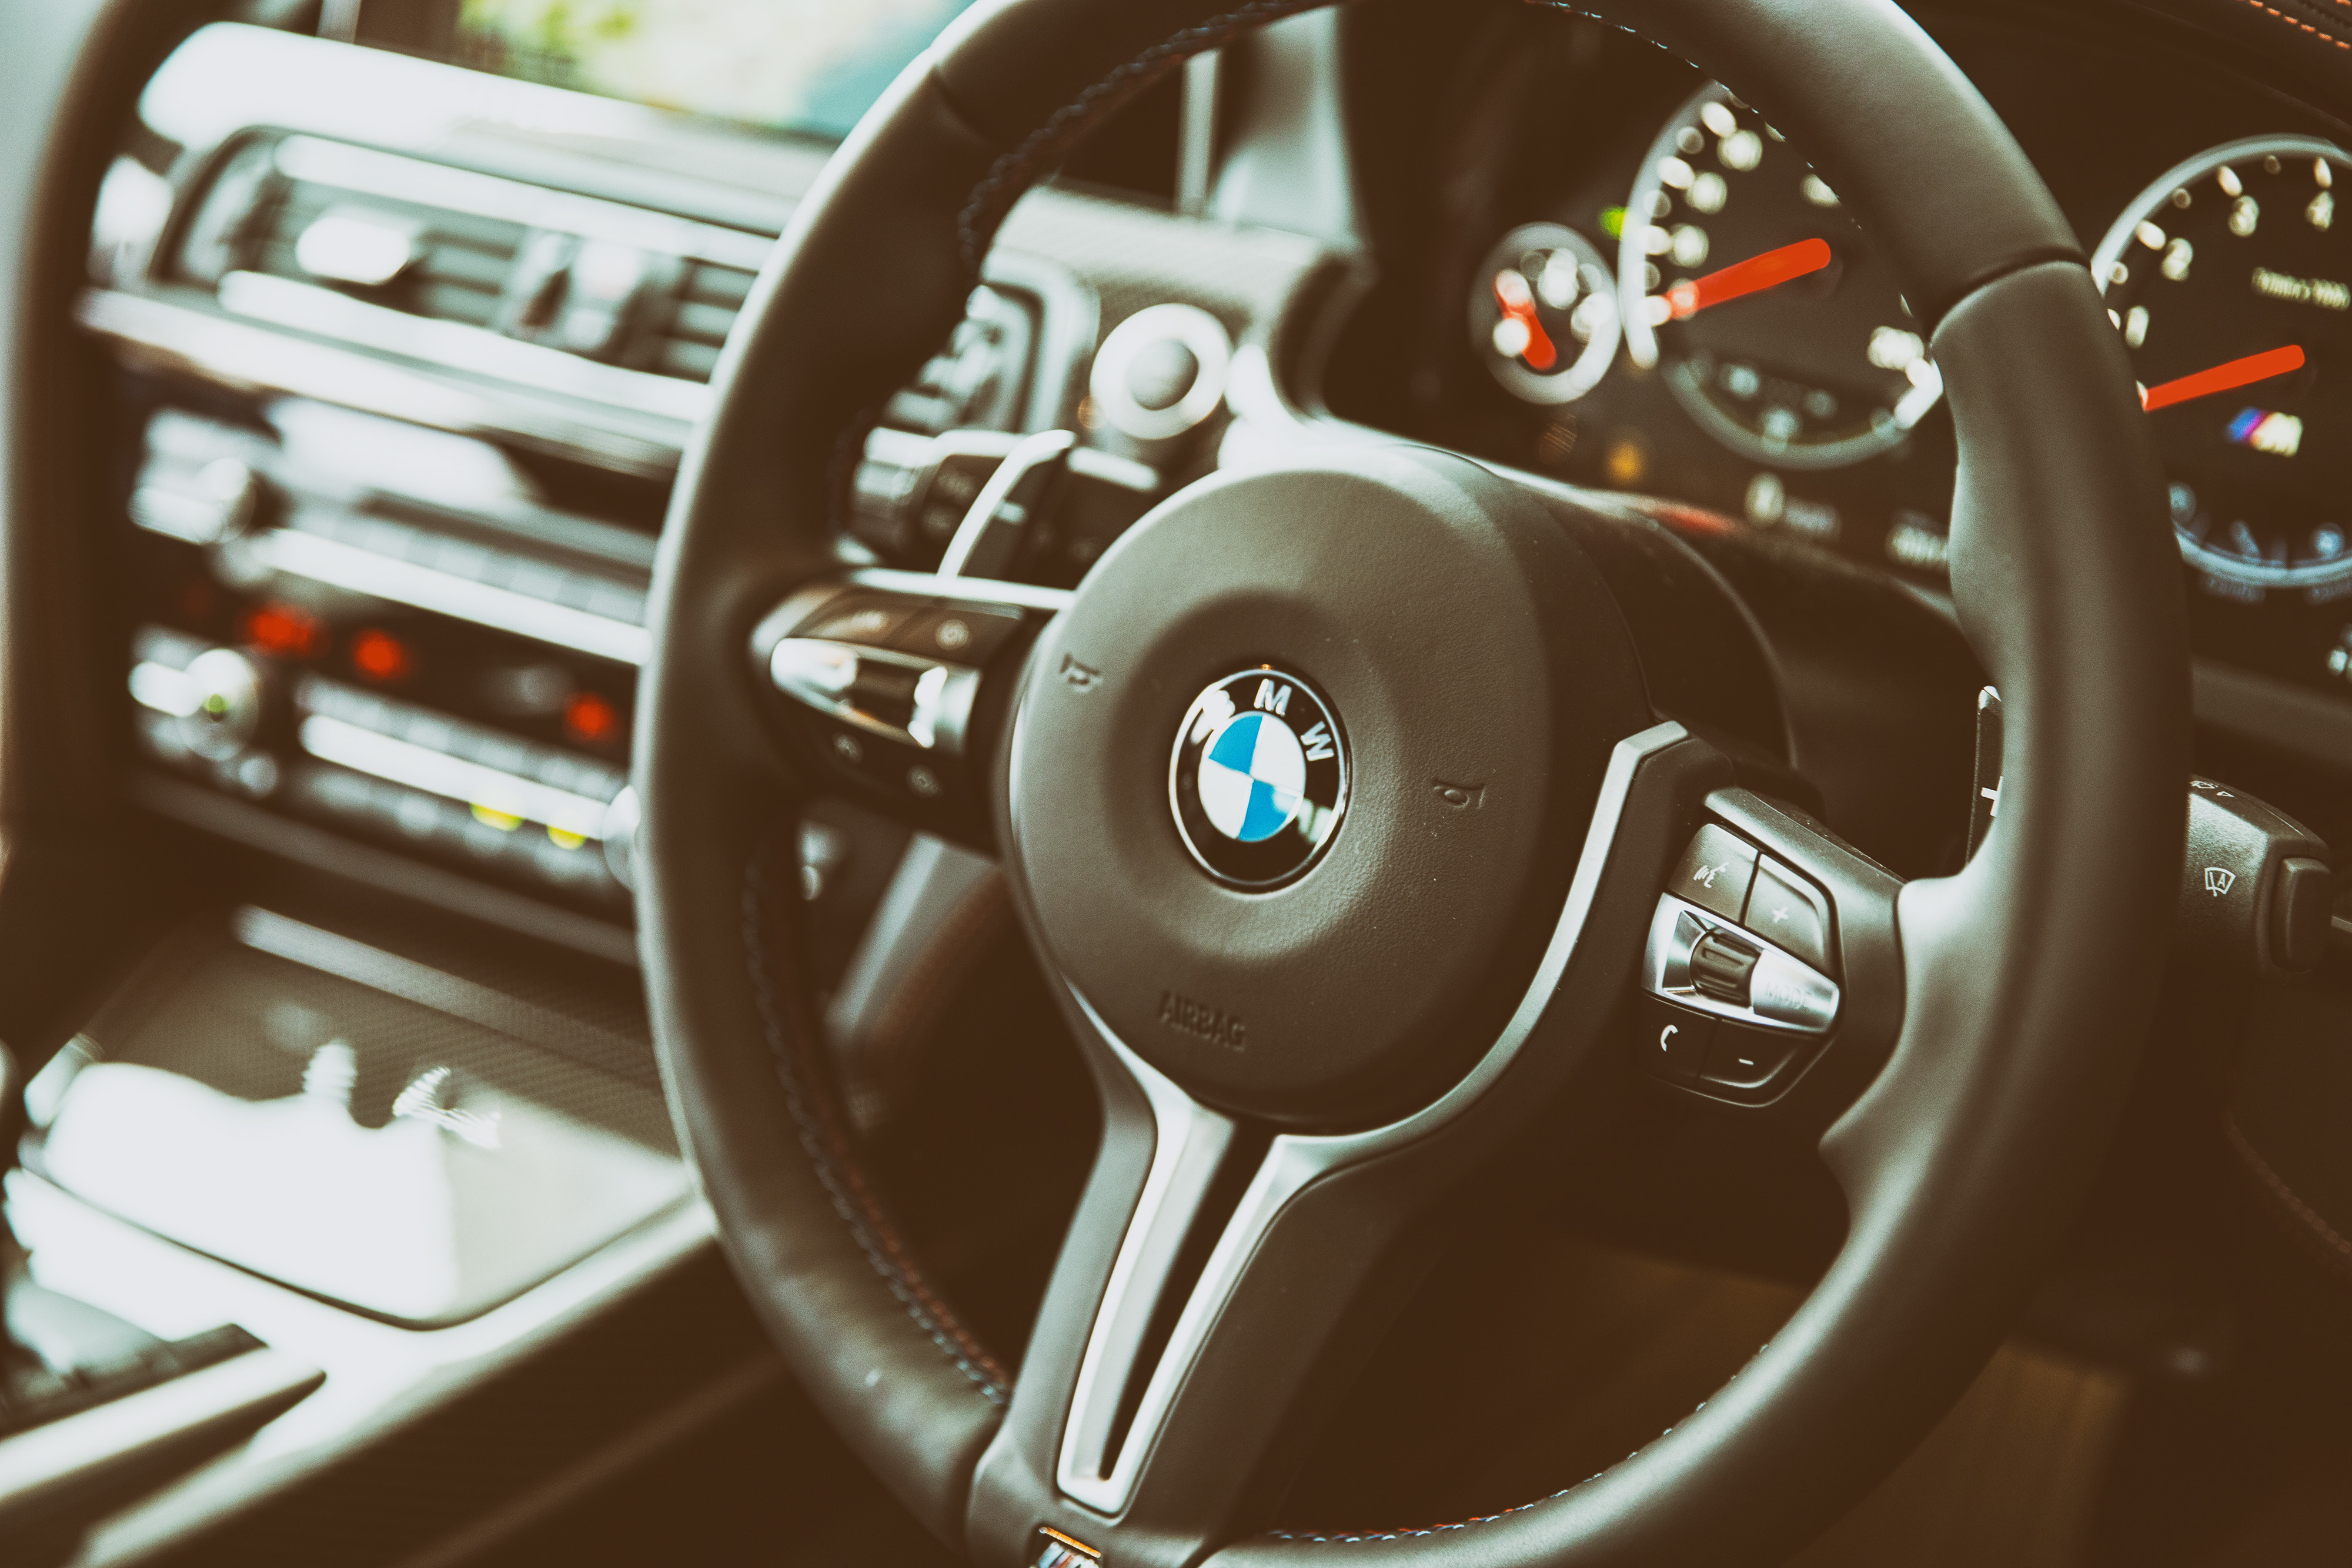 67378 download wallpaper Bmw, Interior, Cars, Steering Wheel, Rudder, M6 screensavers and pictures for free